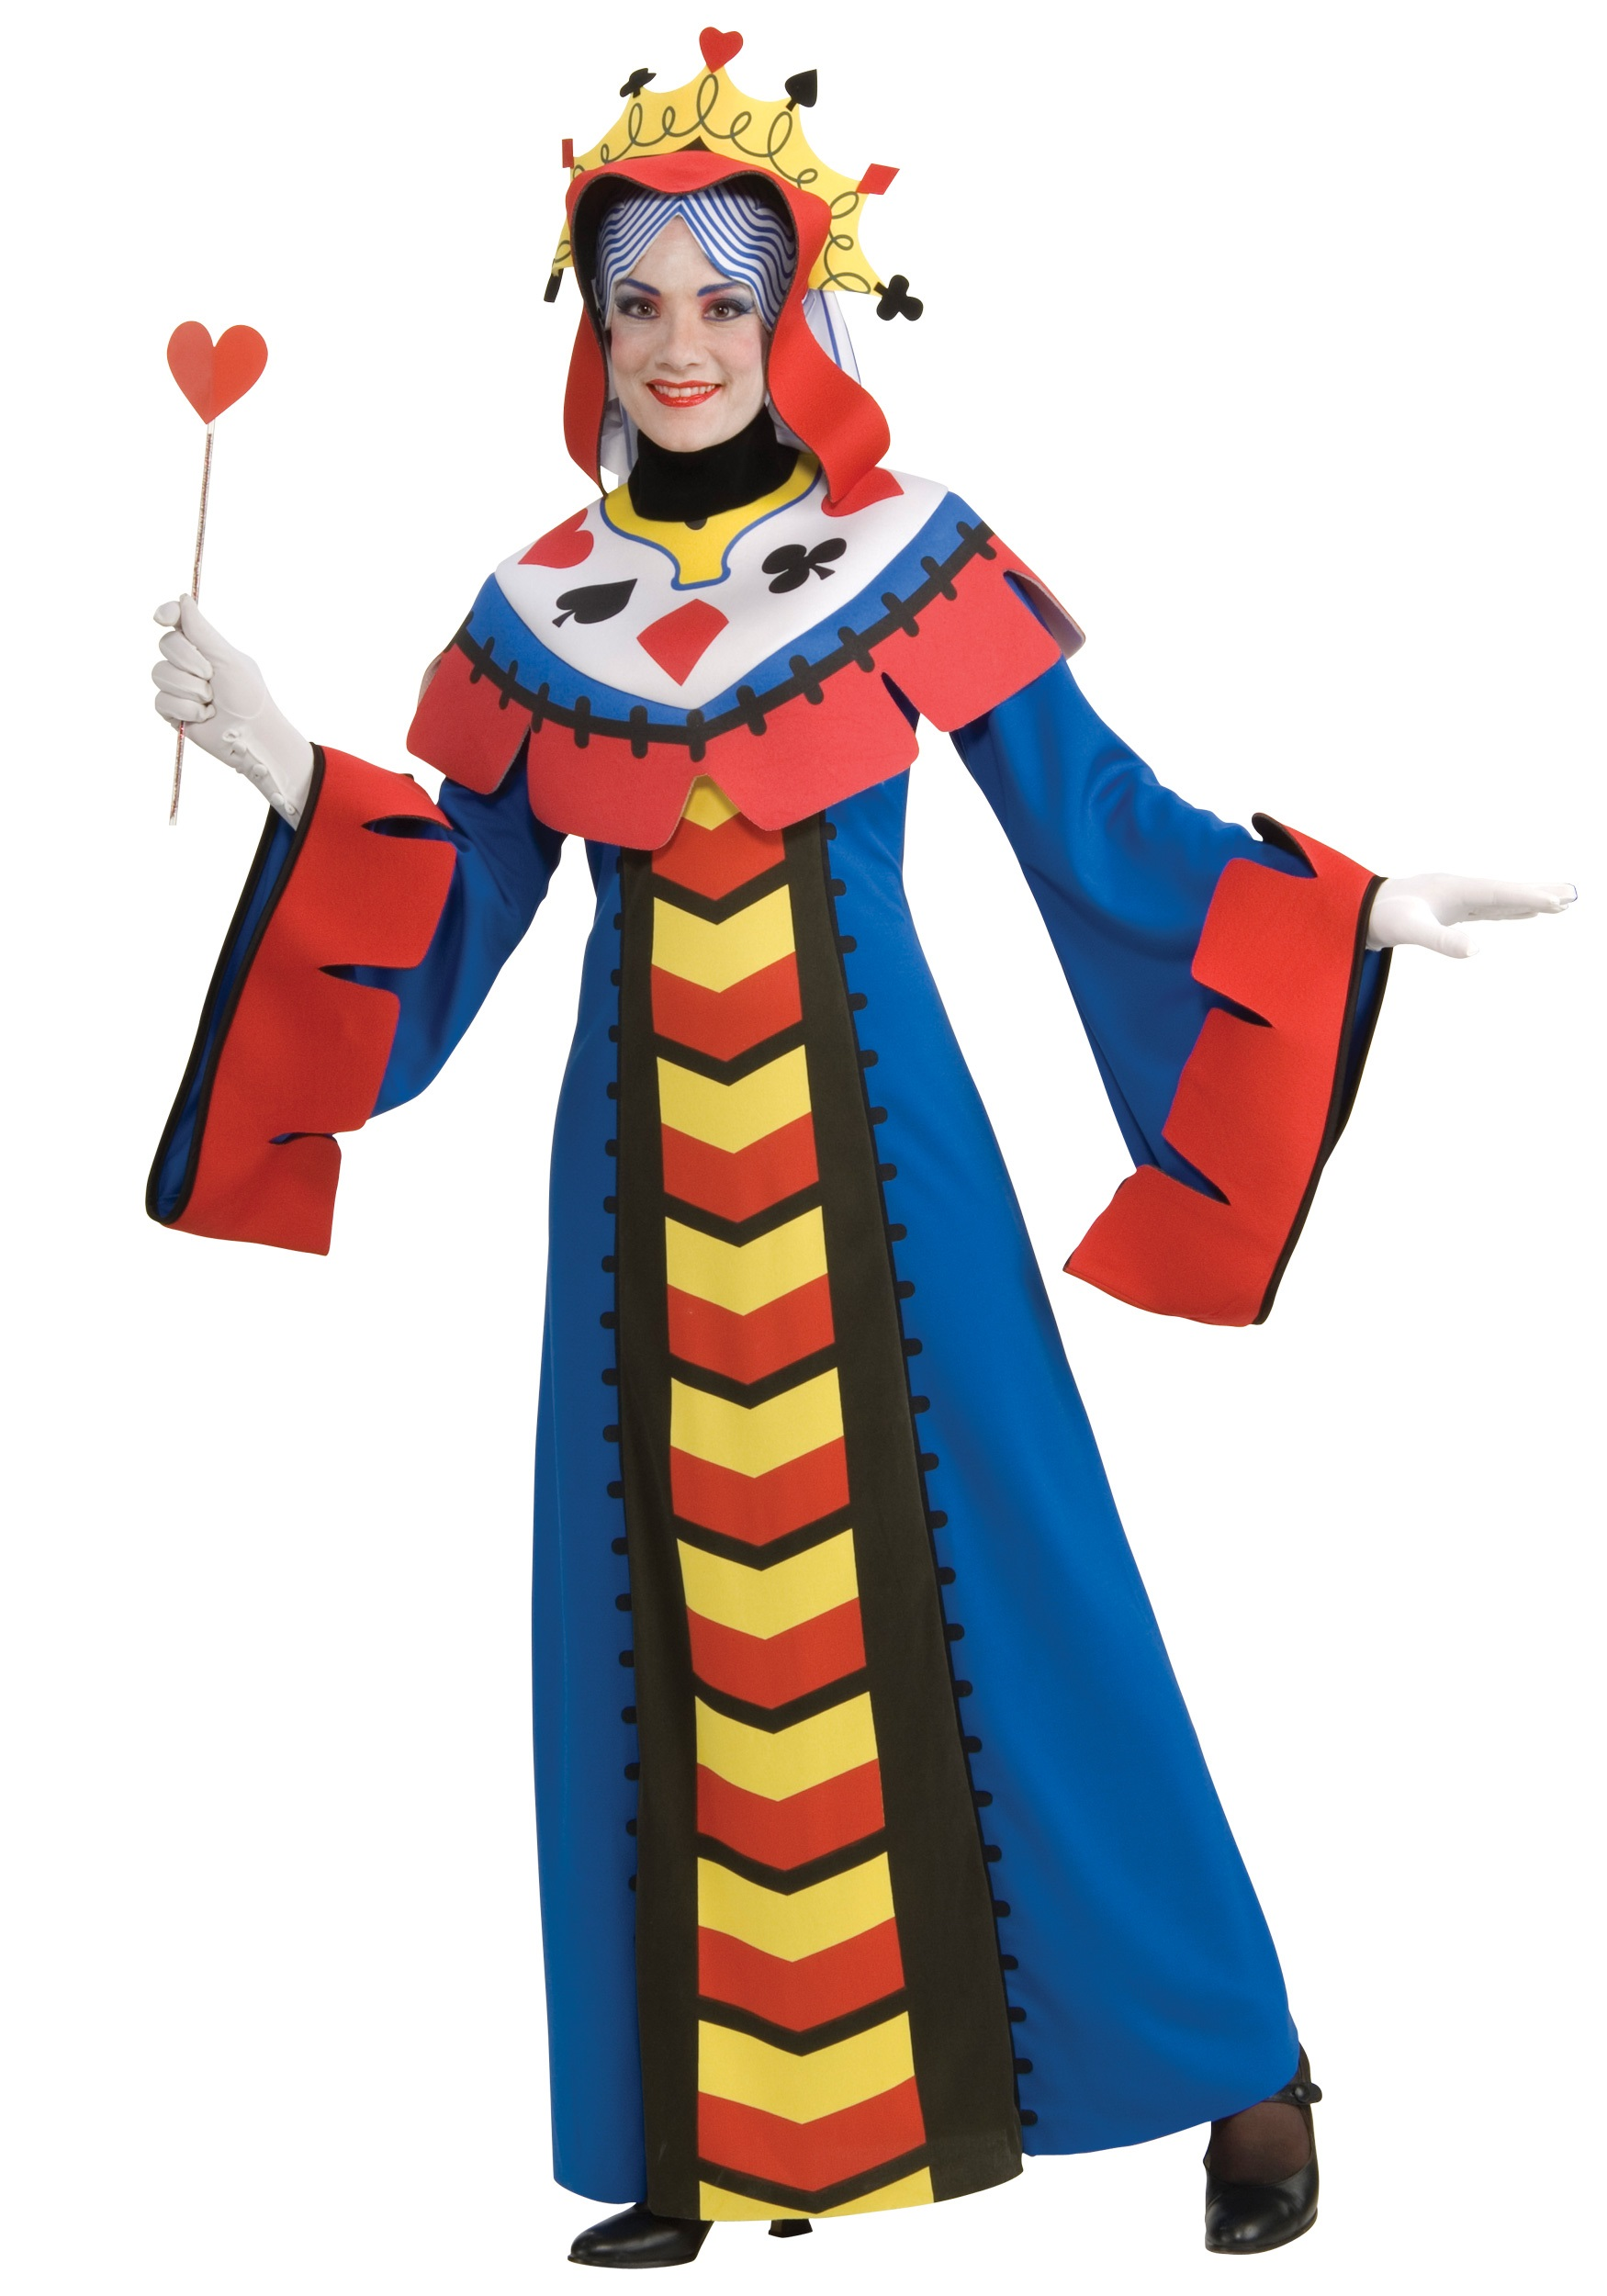 queen of hearts playing card costume ebay. Black Bedroom Furniture Sets. Home Design Ideas